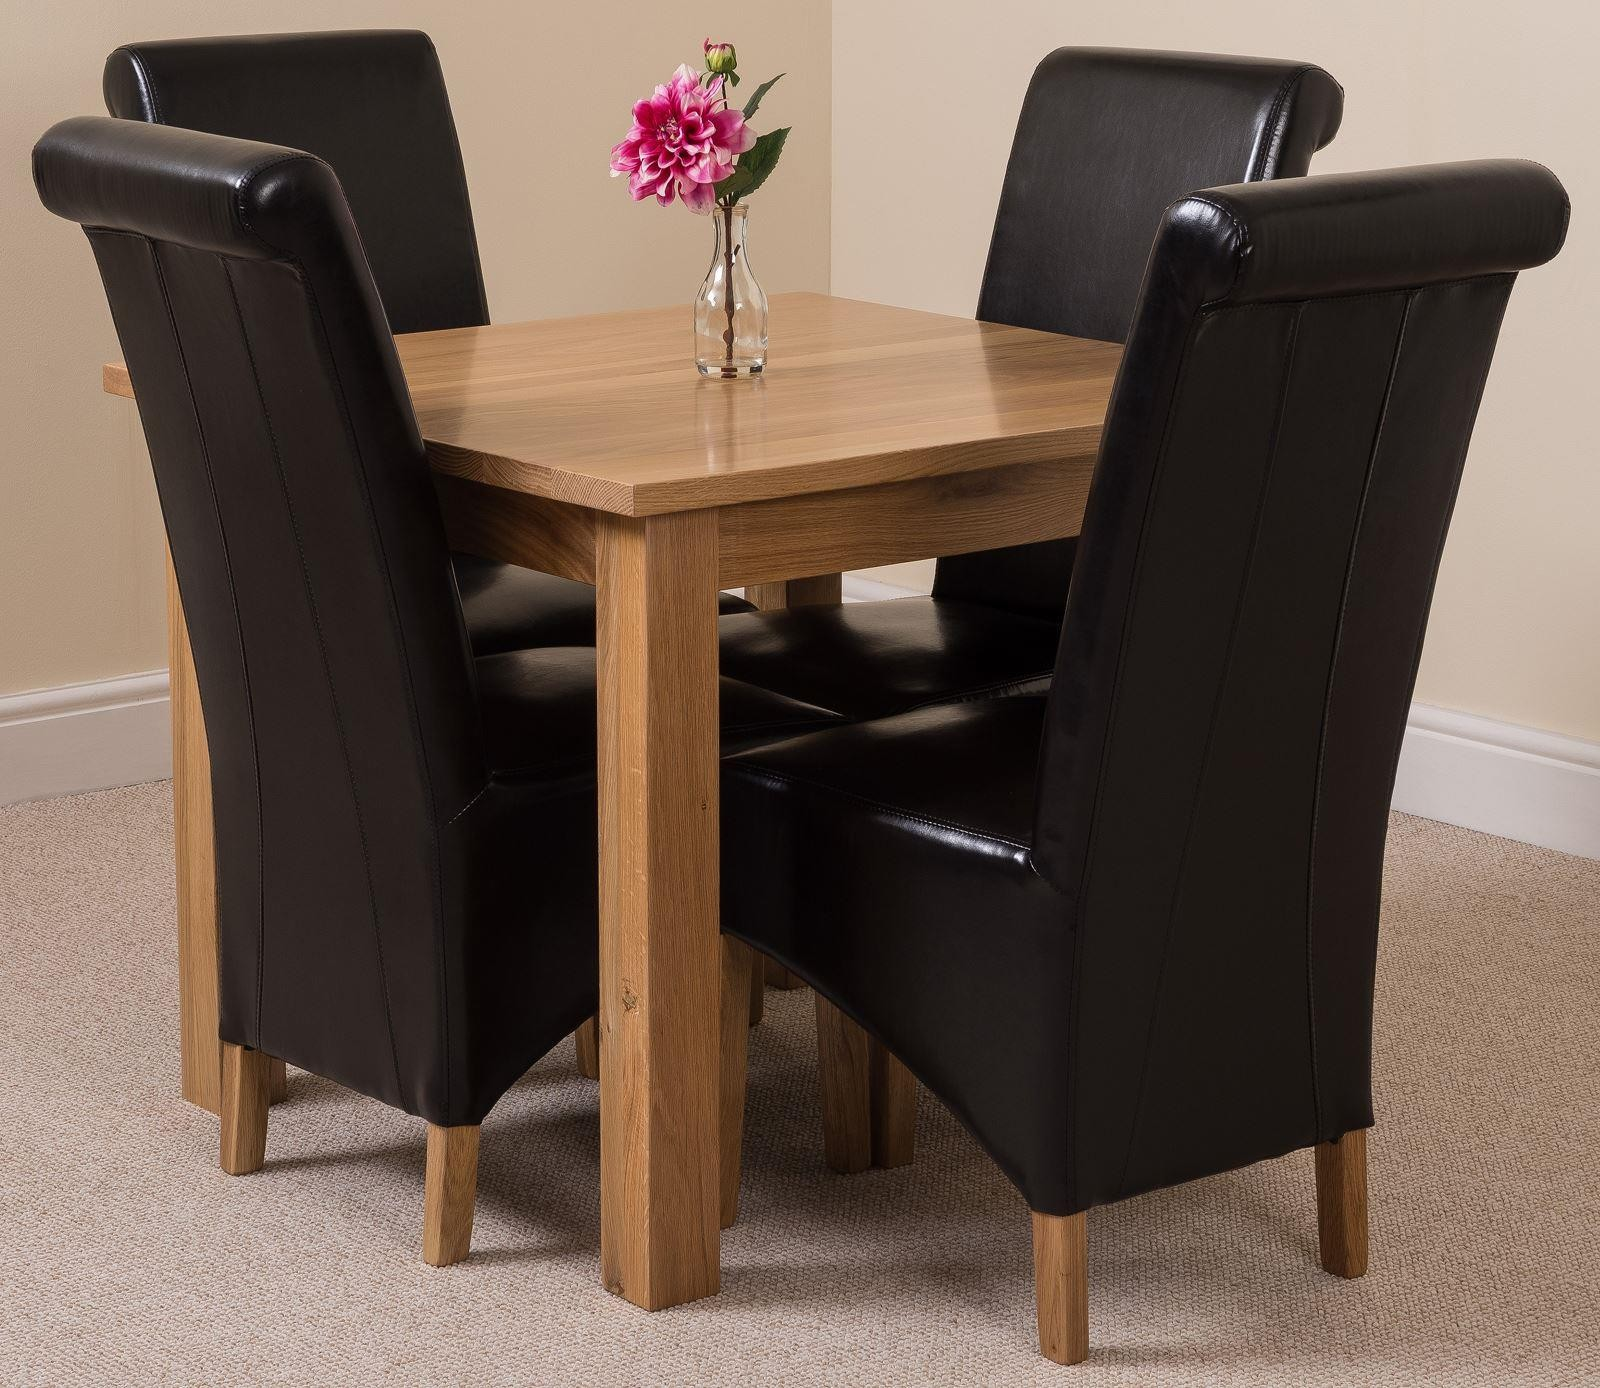 Oslo Solid Oak Dining Table with 4 Montana Dining Chairs [Black Leather]